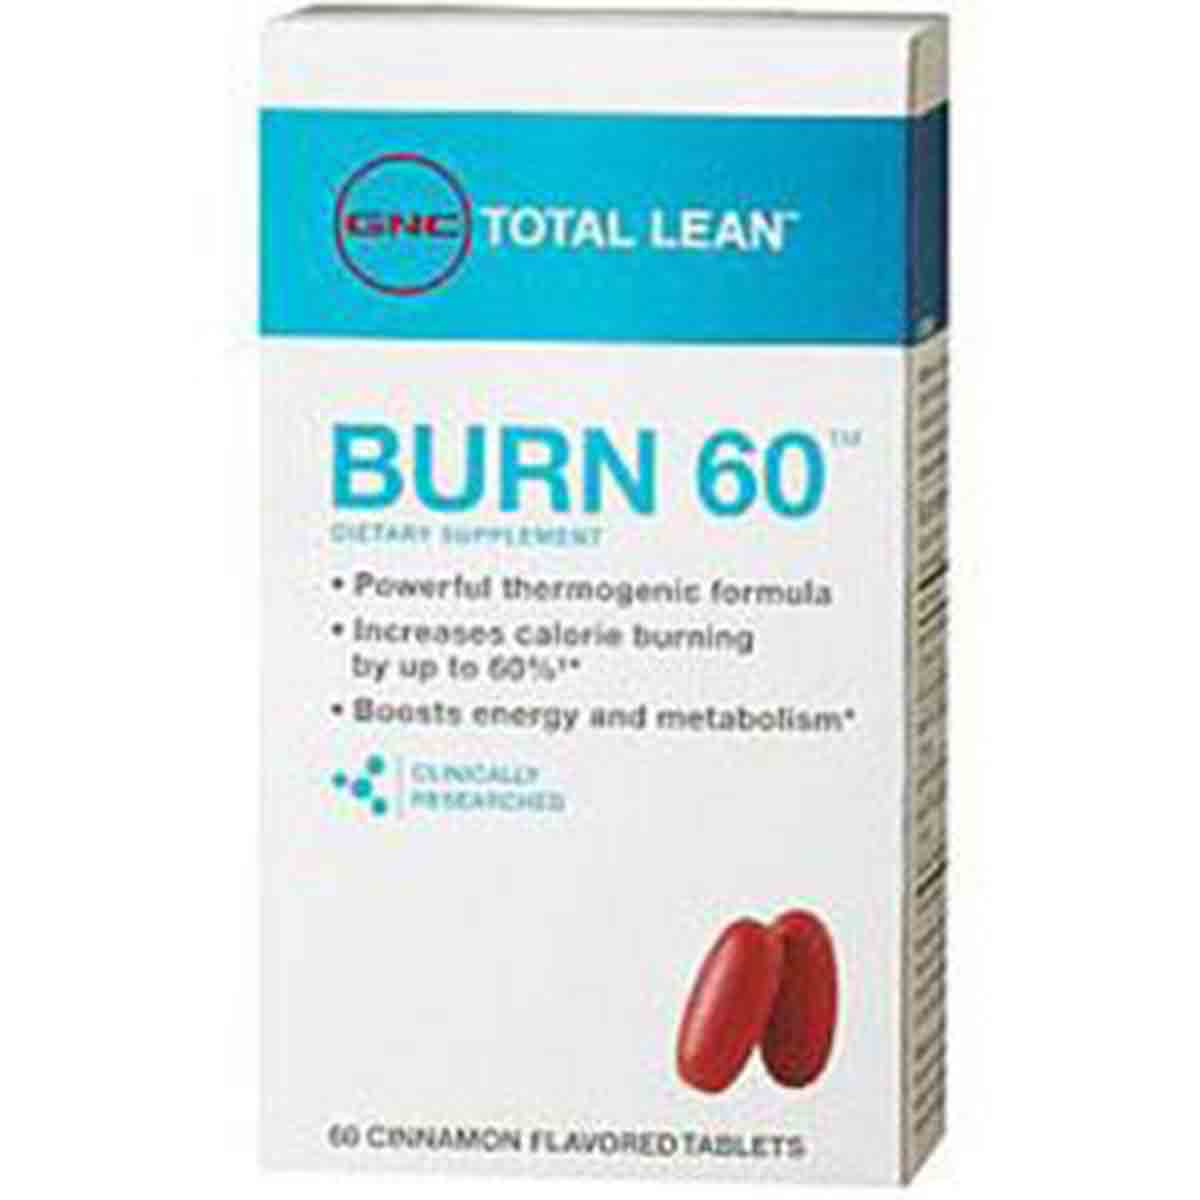 GNC Total Lean Burn 60